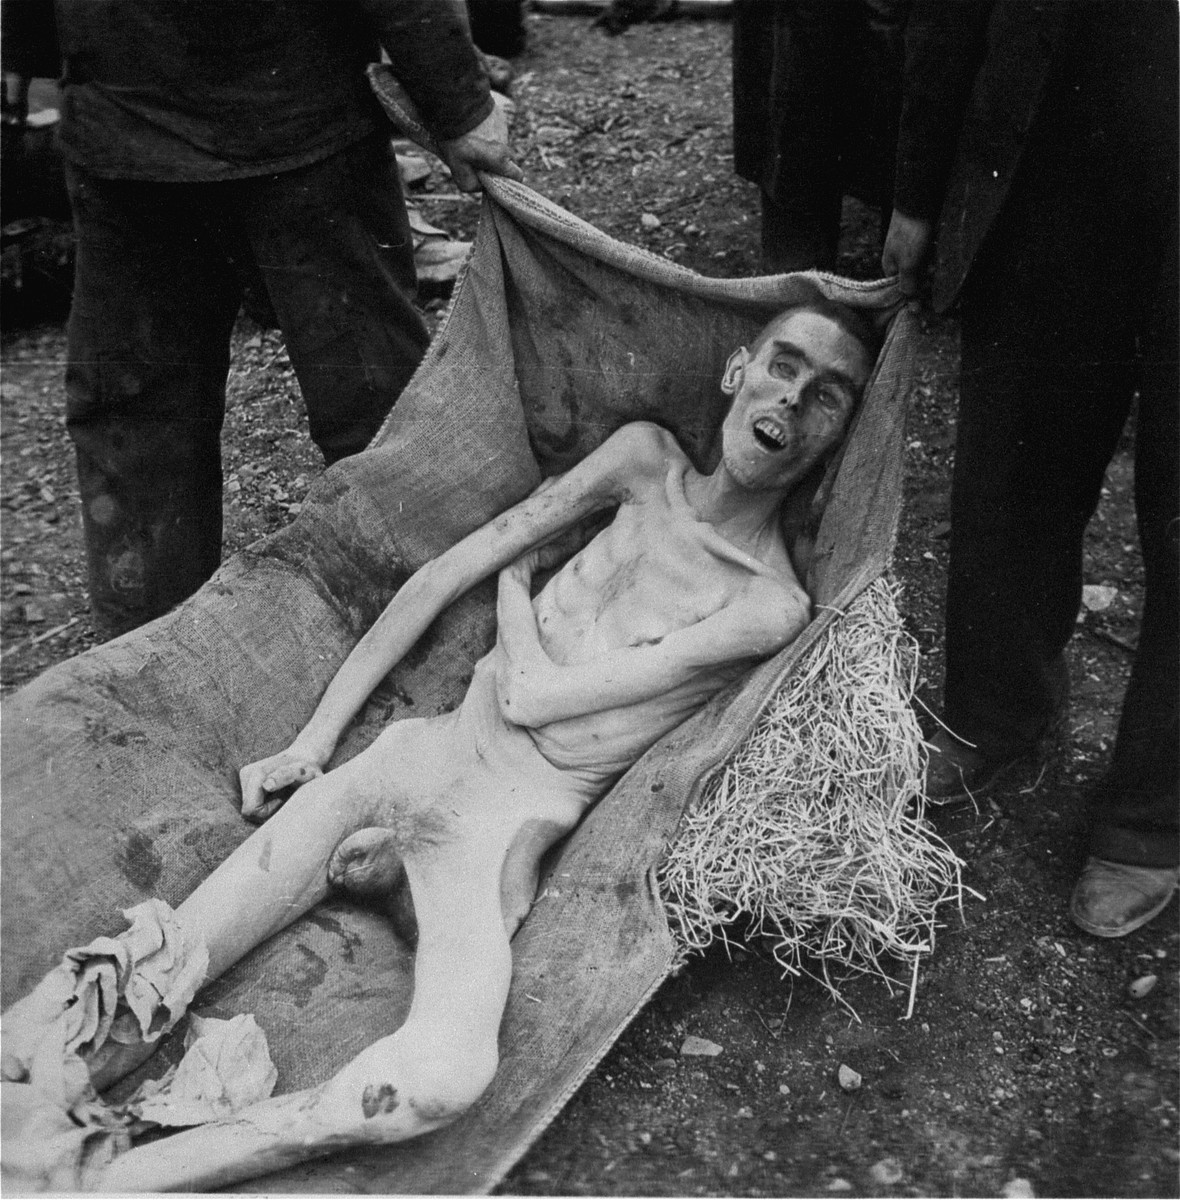 German civilians carry the corpse of a prisoner to a mass grave for burial.